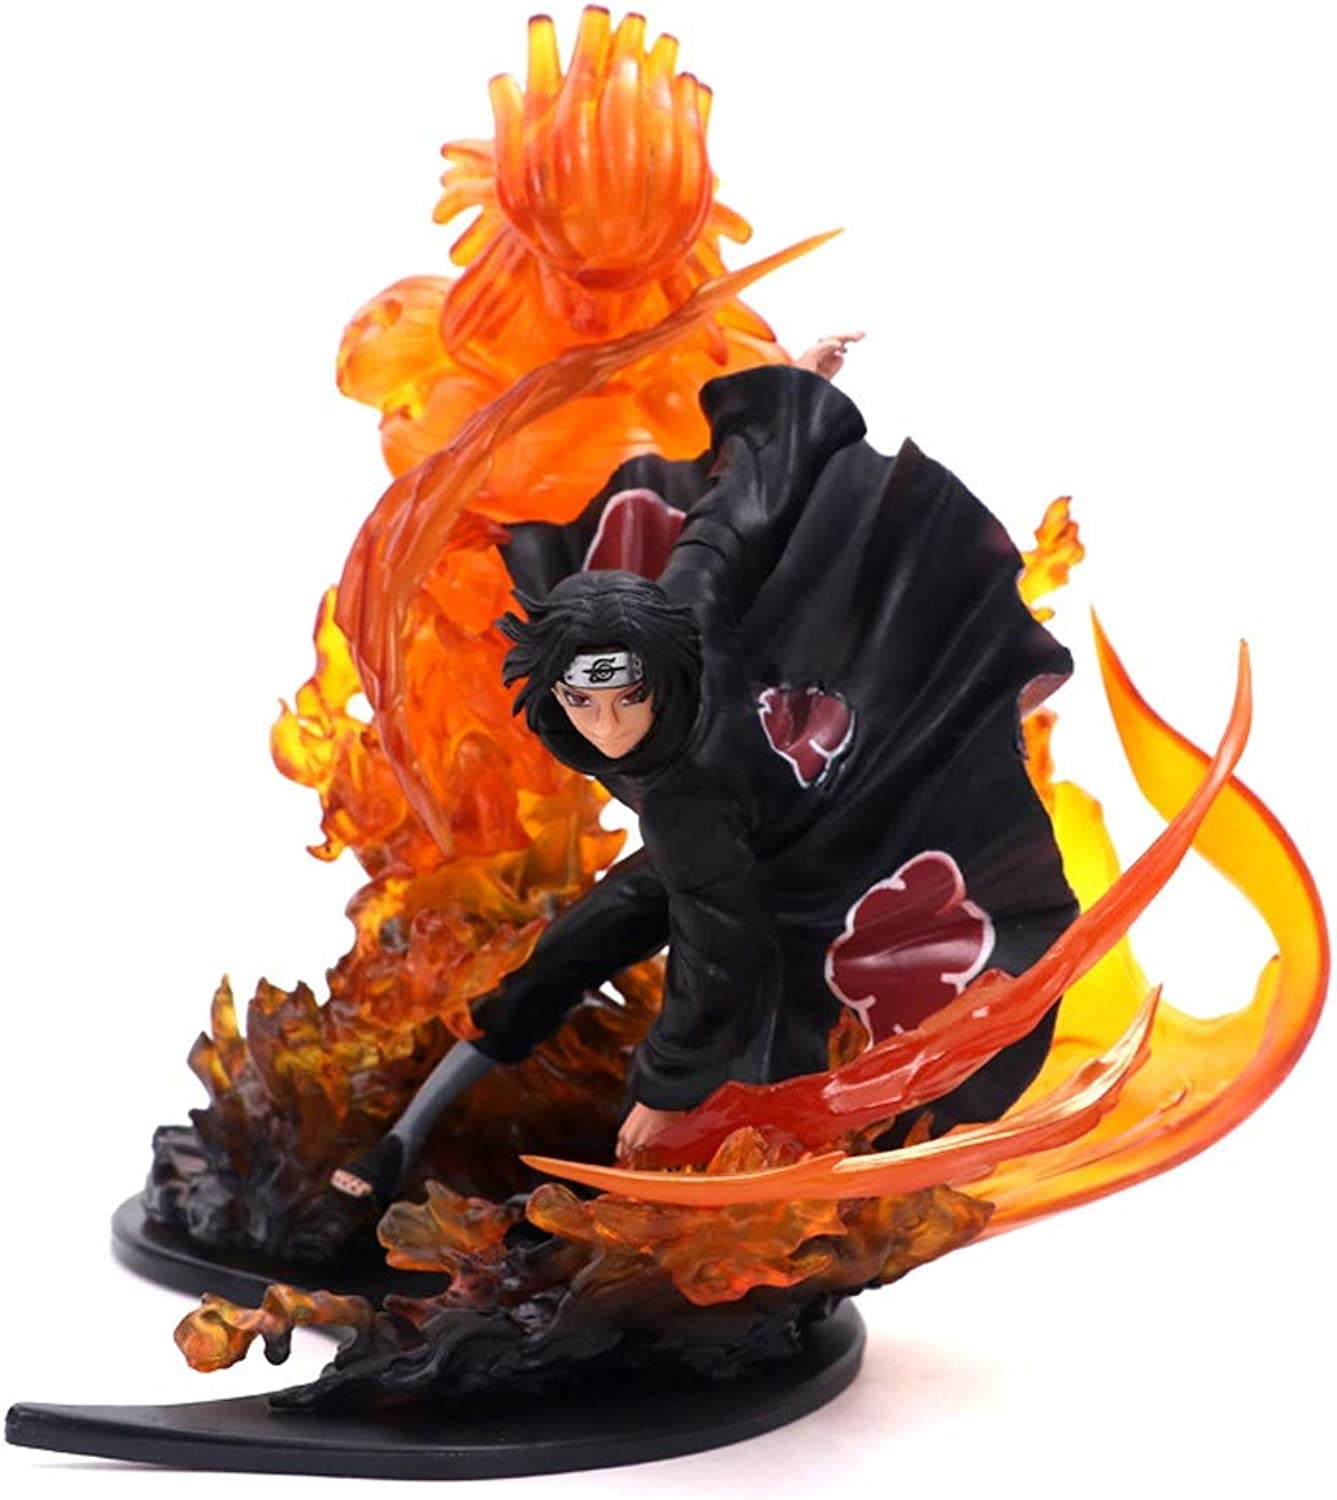 YXLZZO Anime Character Model Game Character Sculpture Boxed Statue Decoration About 21cm High Toy model (color   B)